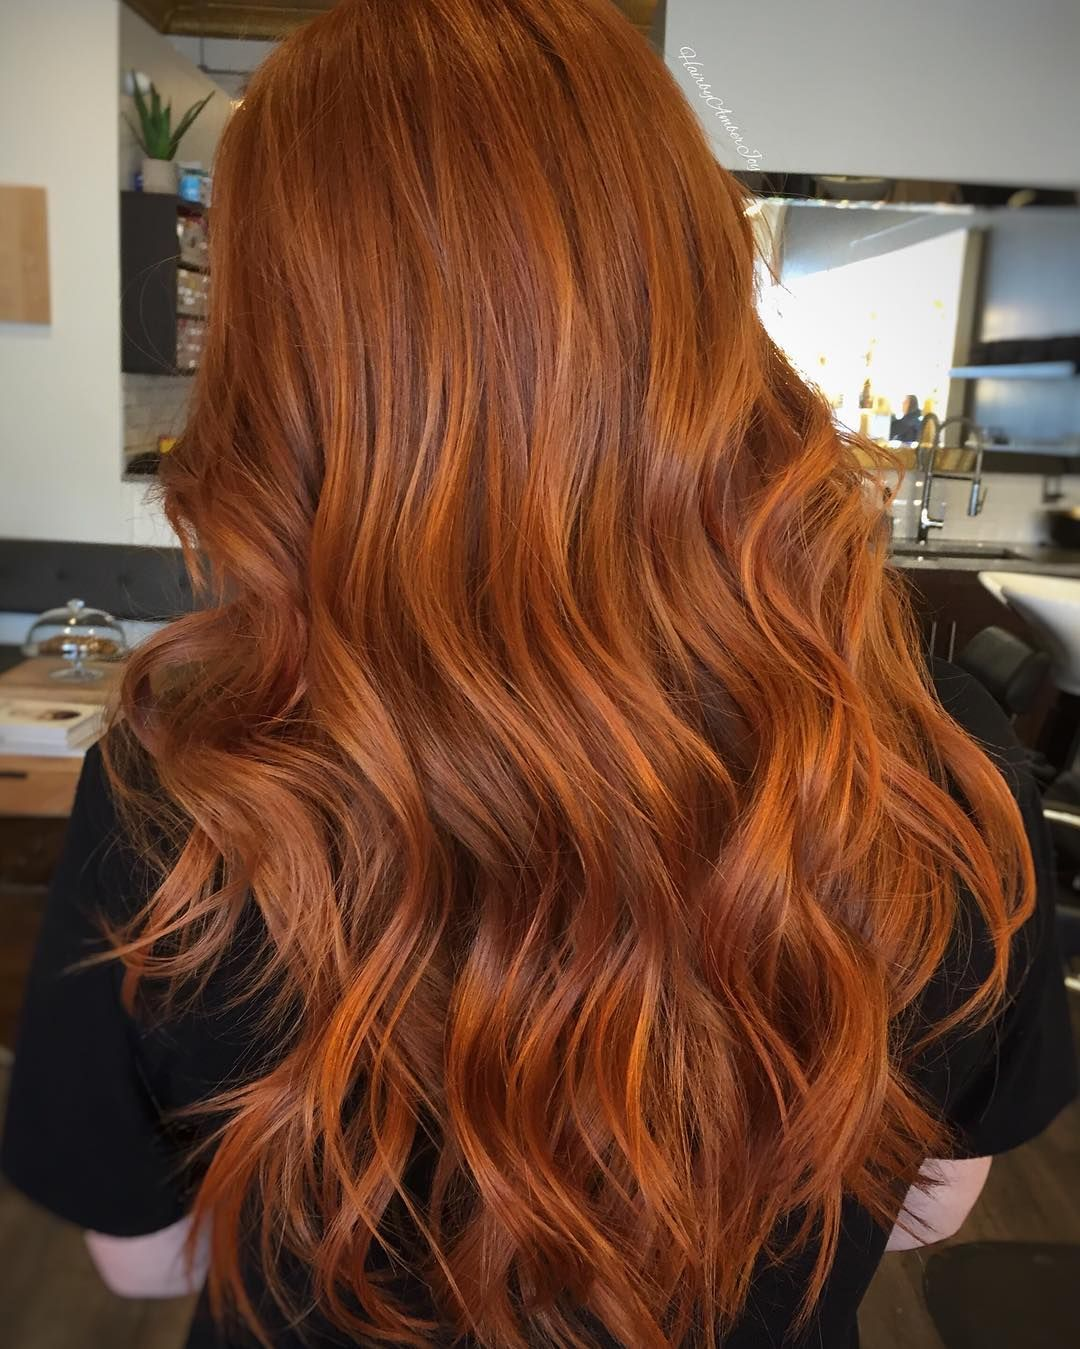 Be A Copper Goddess Or A Retro Diva 50 Ways To Rock A Copper Hair Color Hair Motive Hair Motive